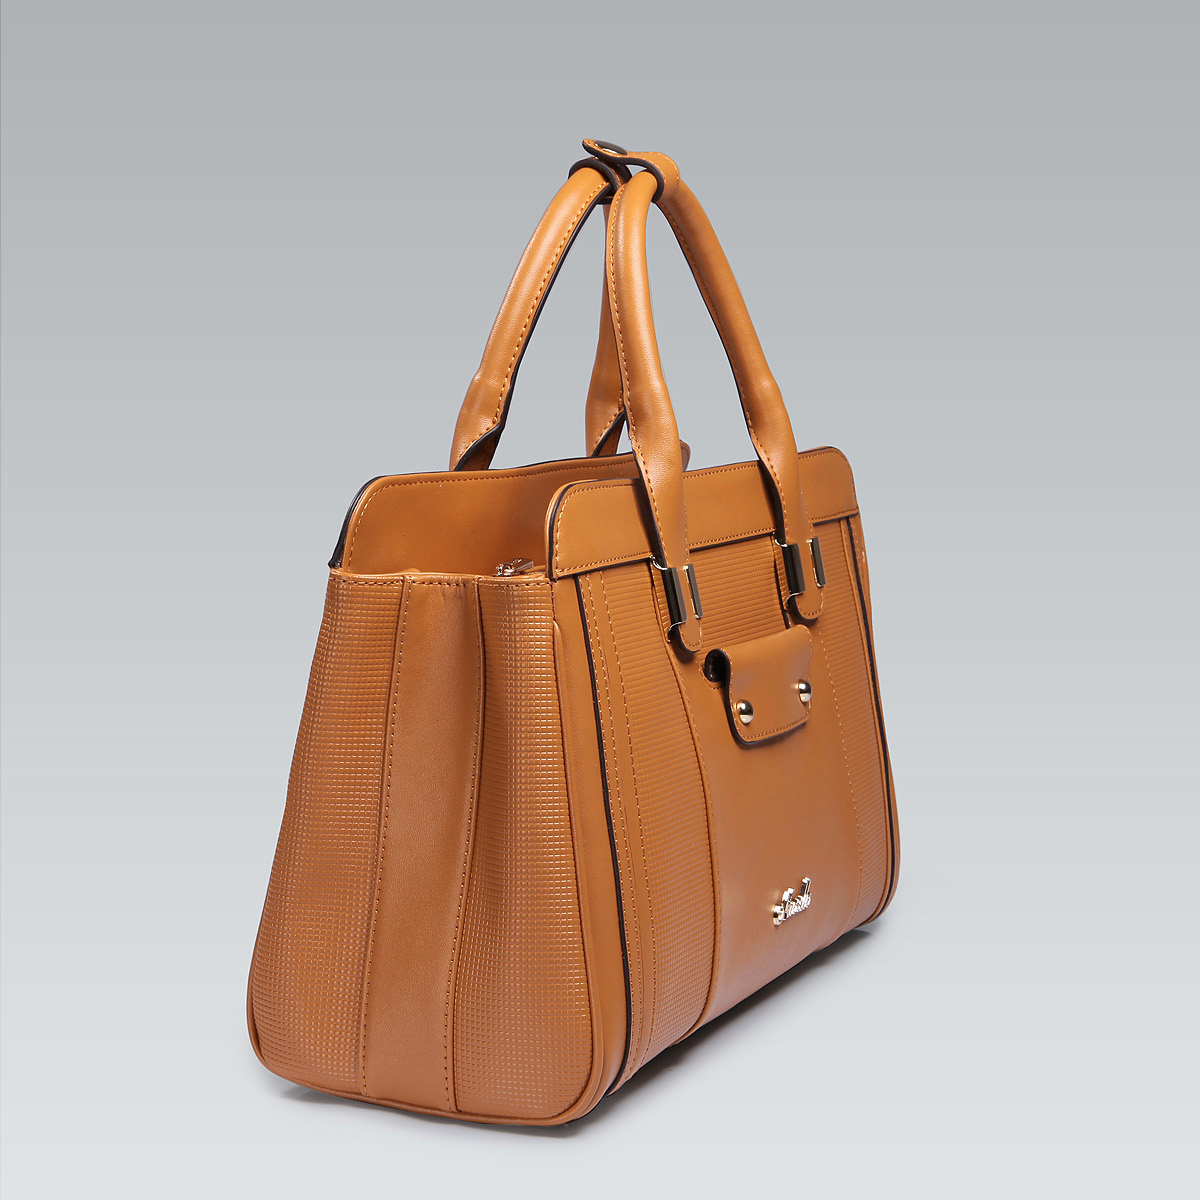 Fantastic Ladies Trasea Italian Leather Handbag - Brown